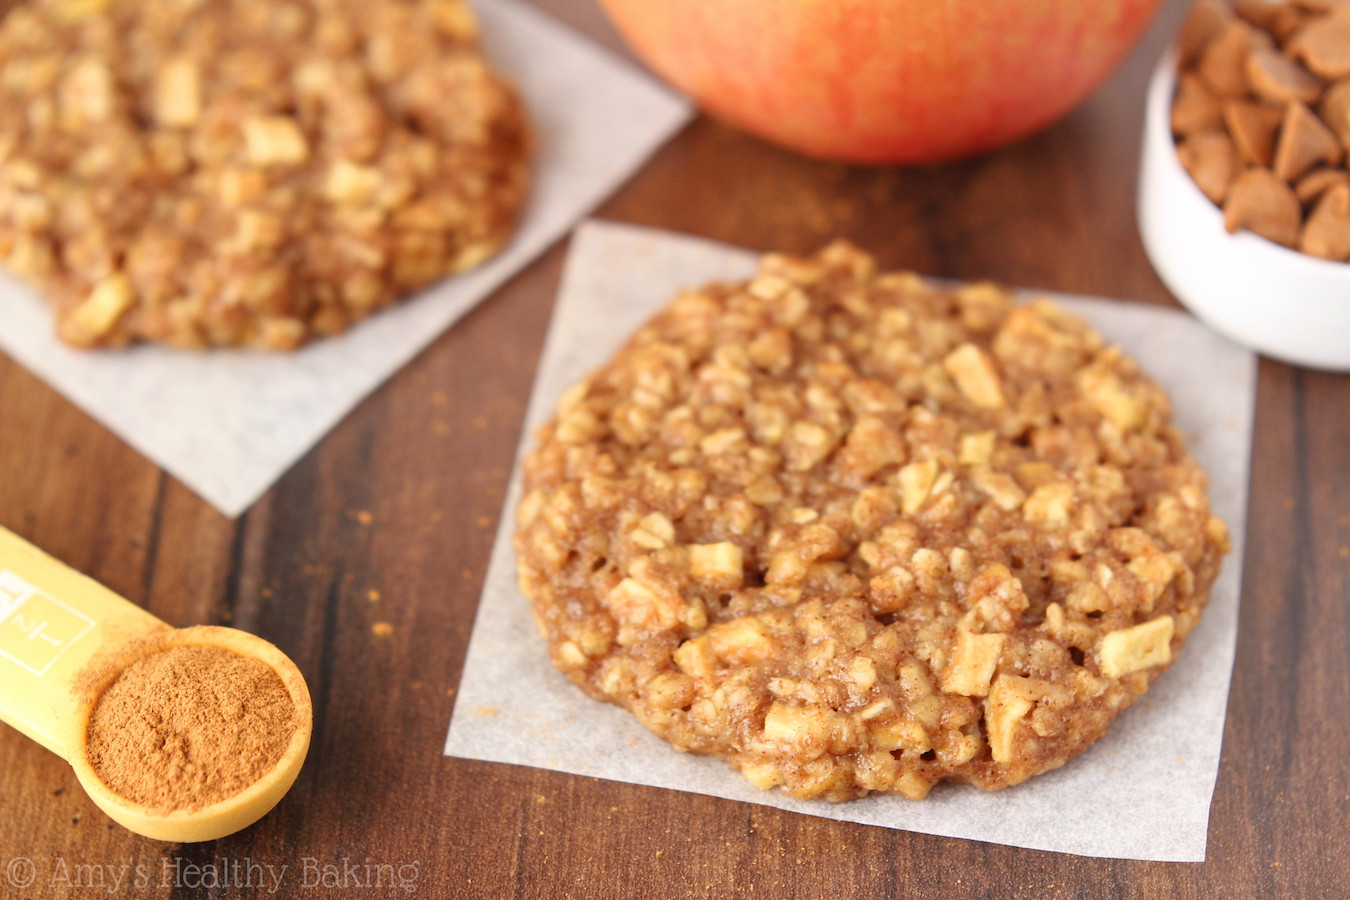 Healthy Apple Recipes  Apple Pie Oatmeal Cookies Recipe Video